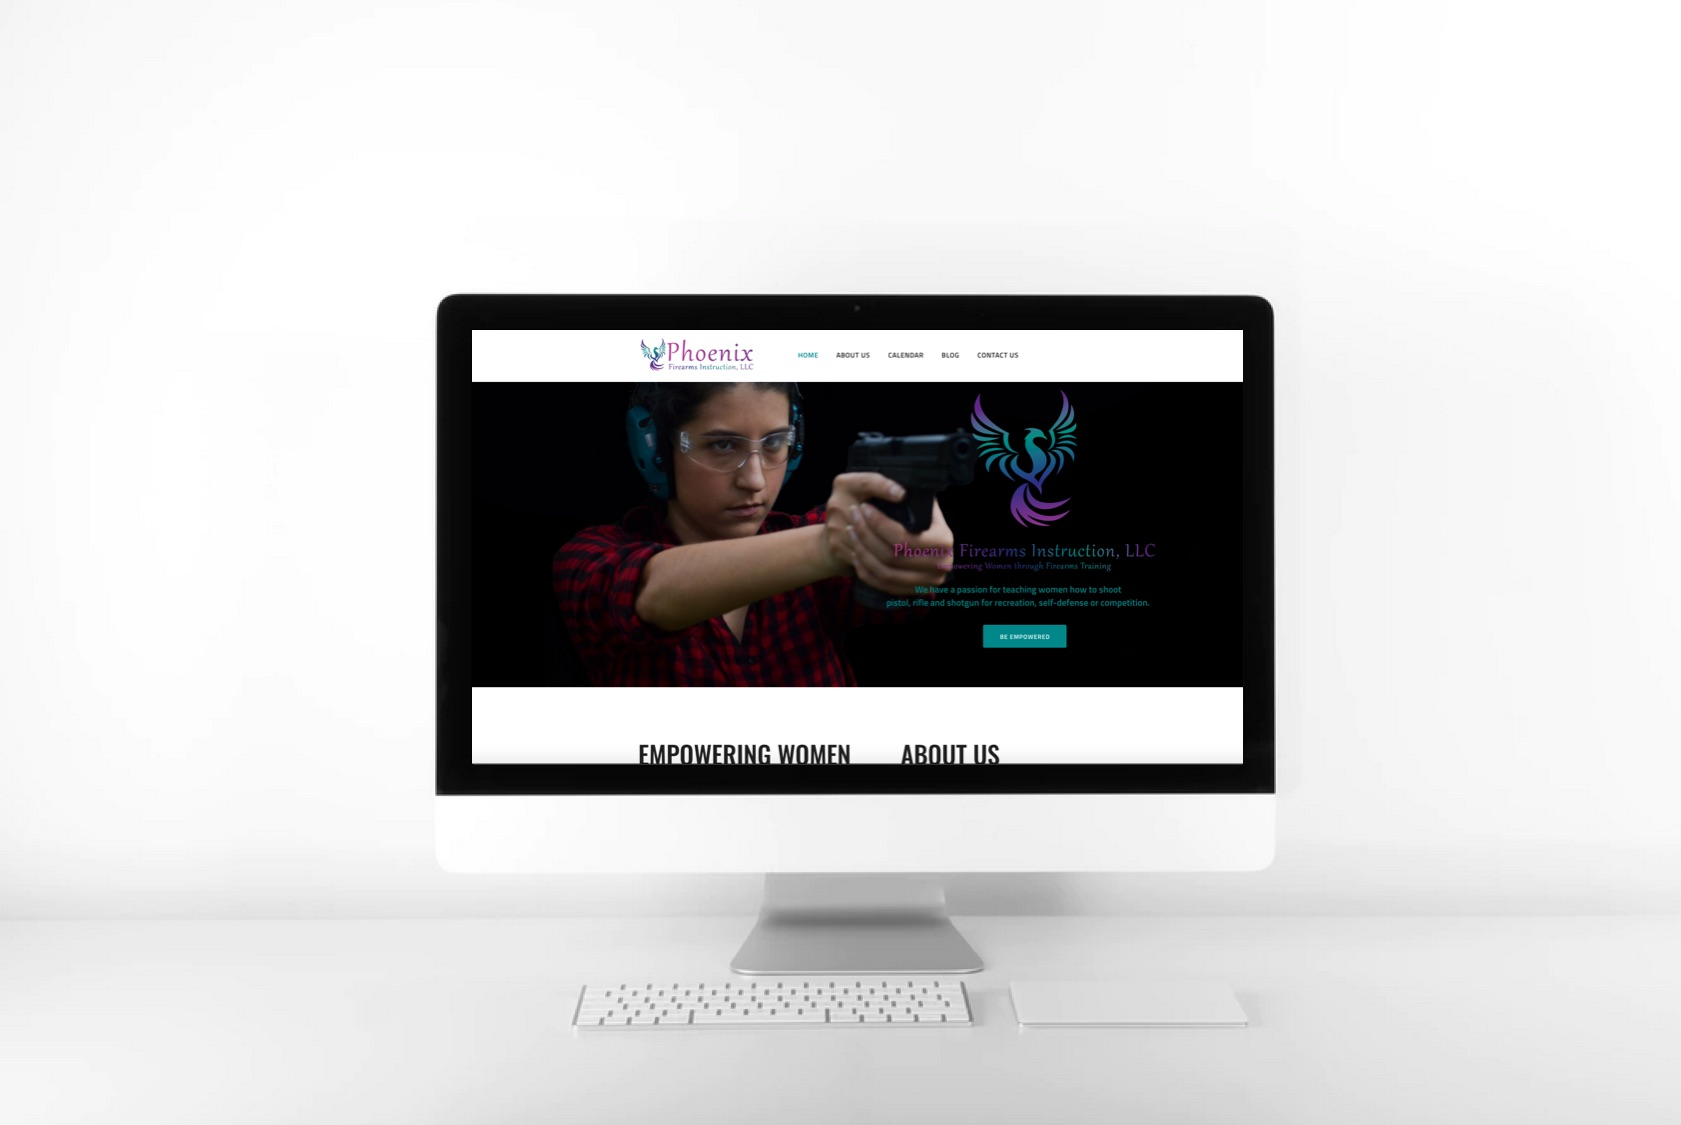 Phoenix Firearms Instruction: Empowering Women with Information